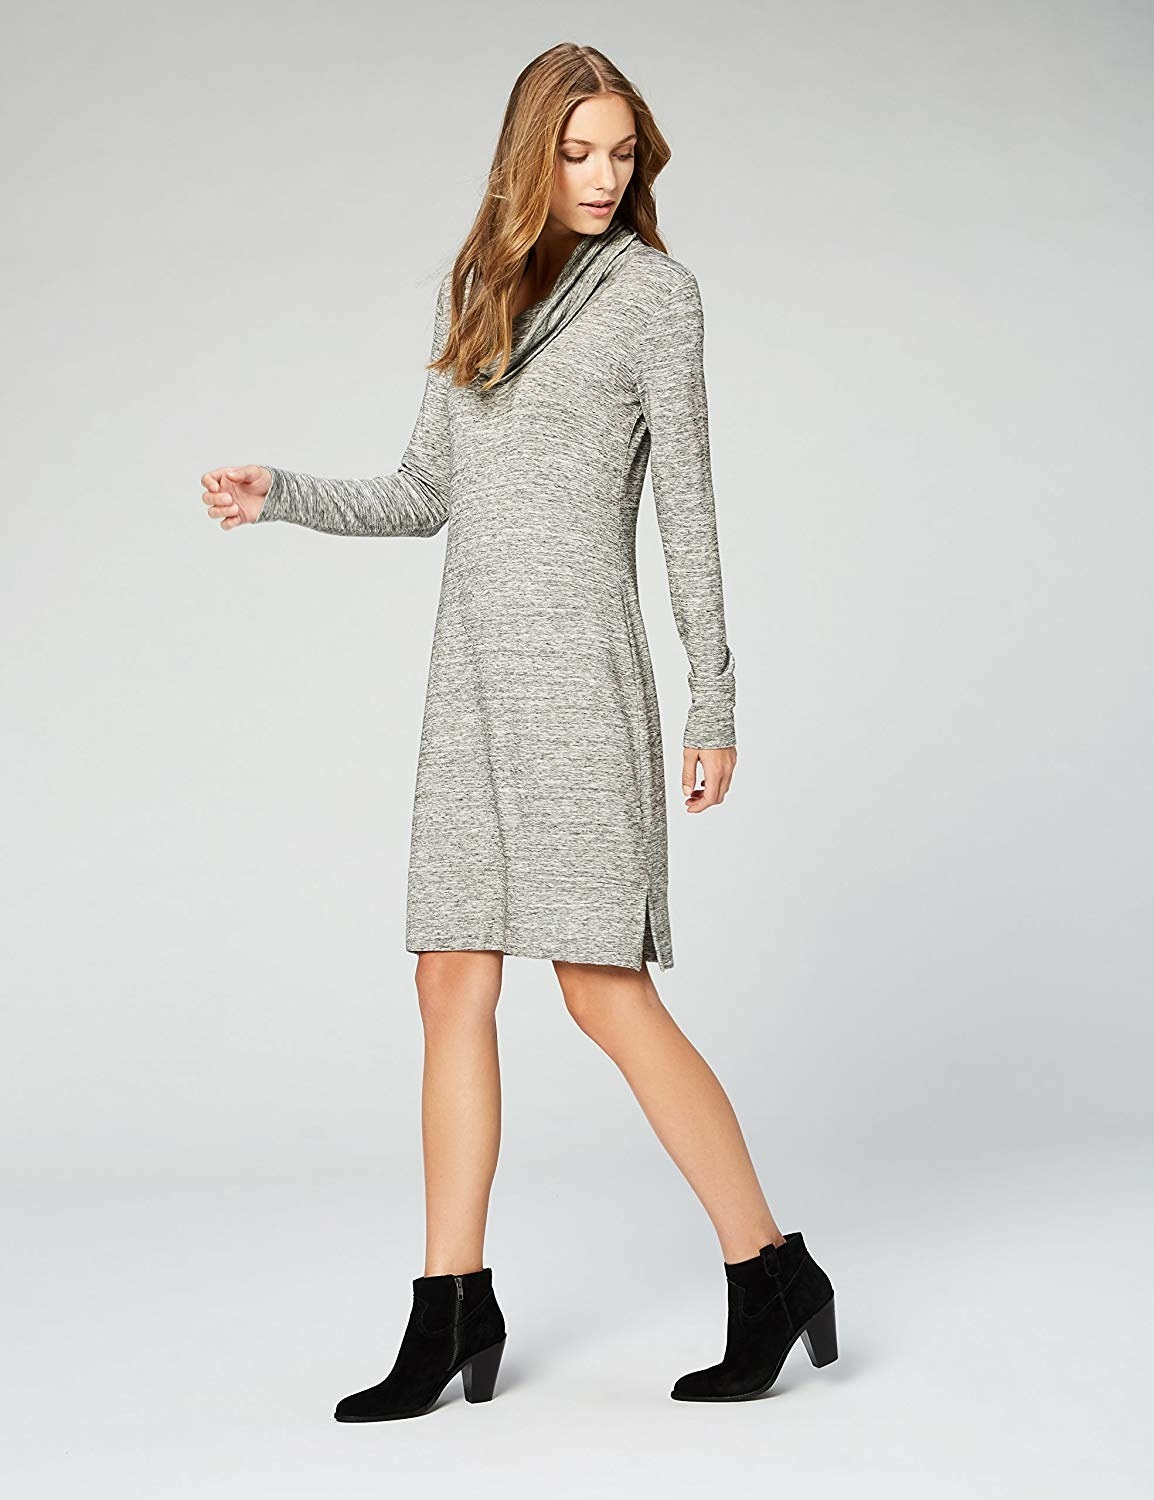 the dress in gray